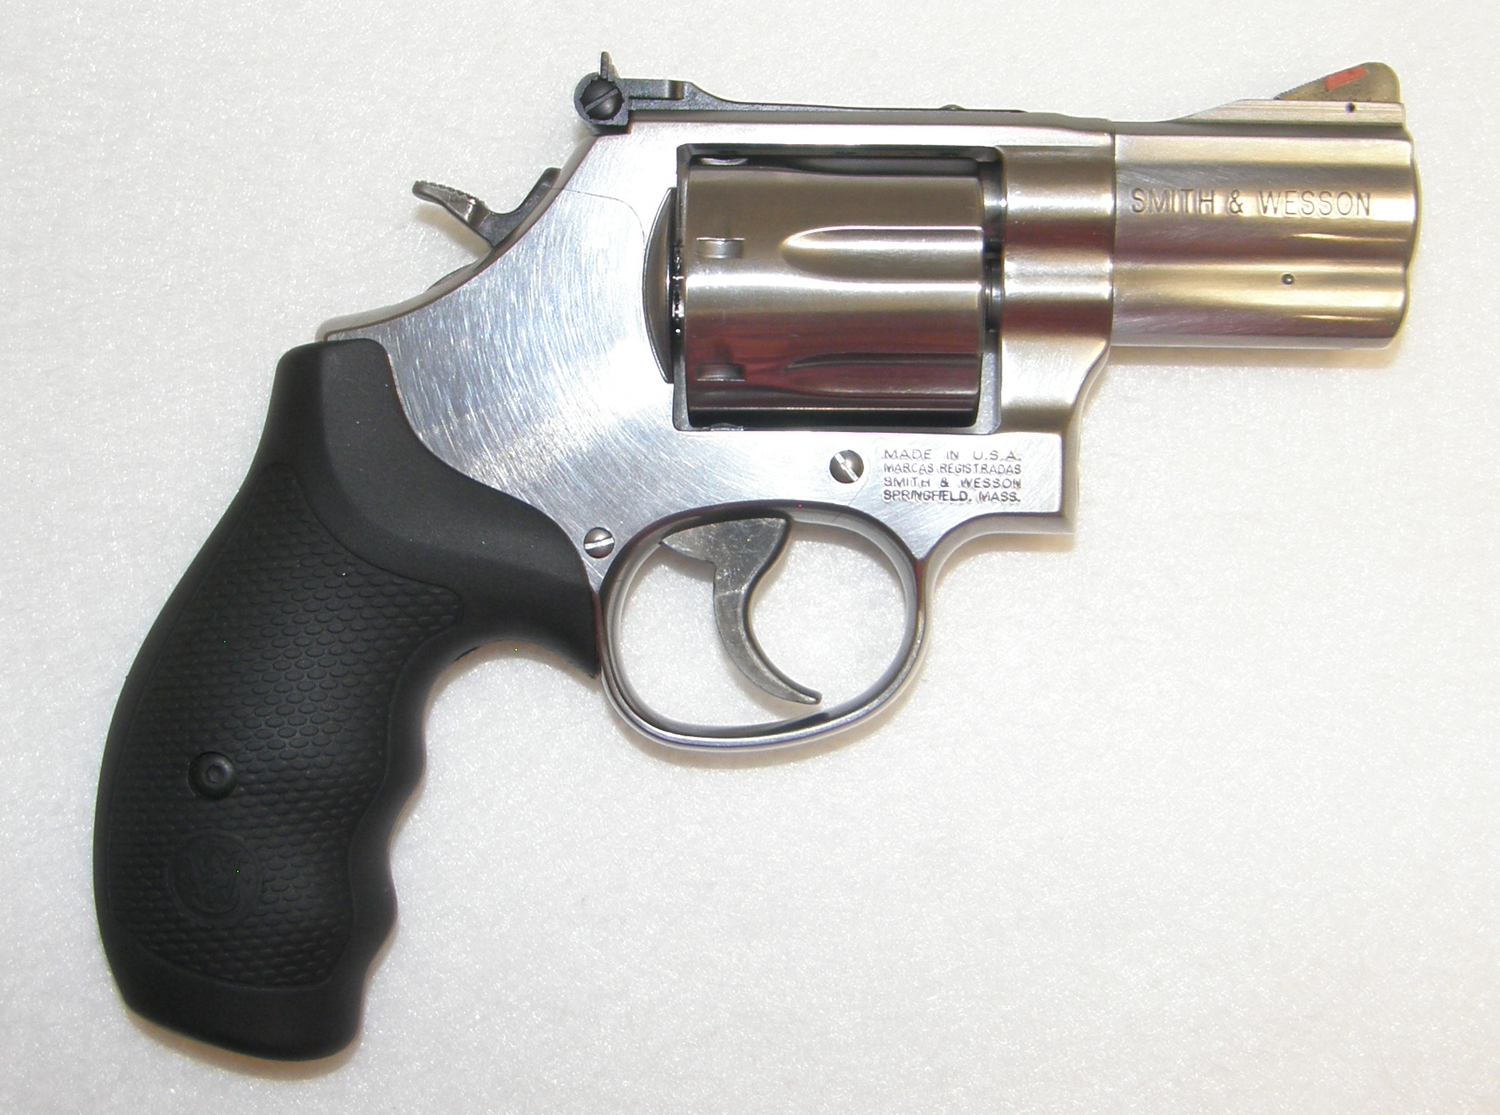 Smith and Wesson 686 Plus, .357 Magnum 2.5 Inch Barrel ...